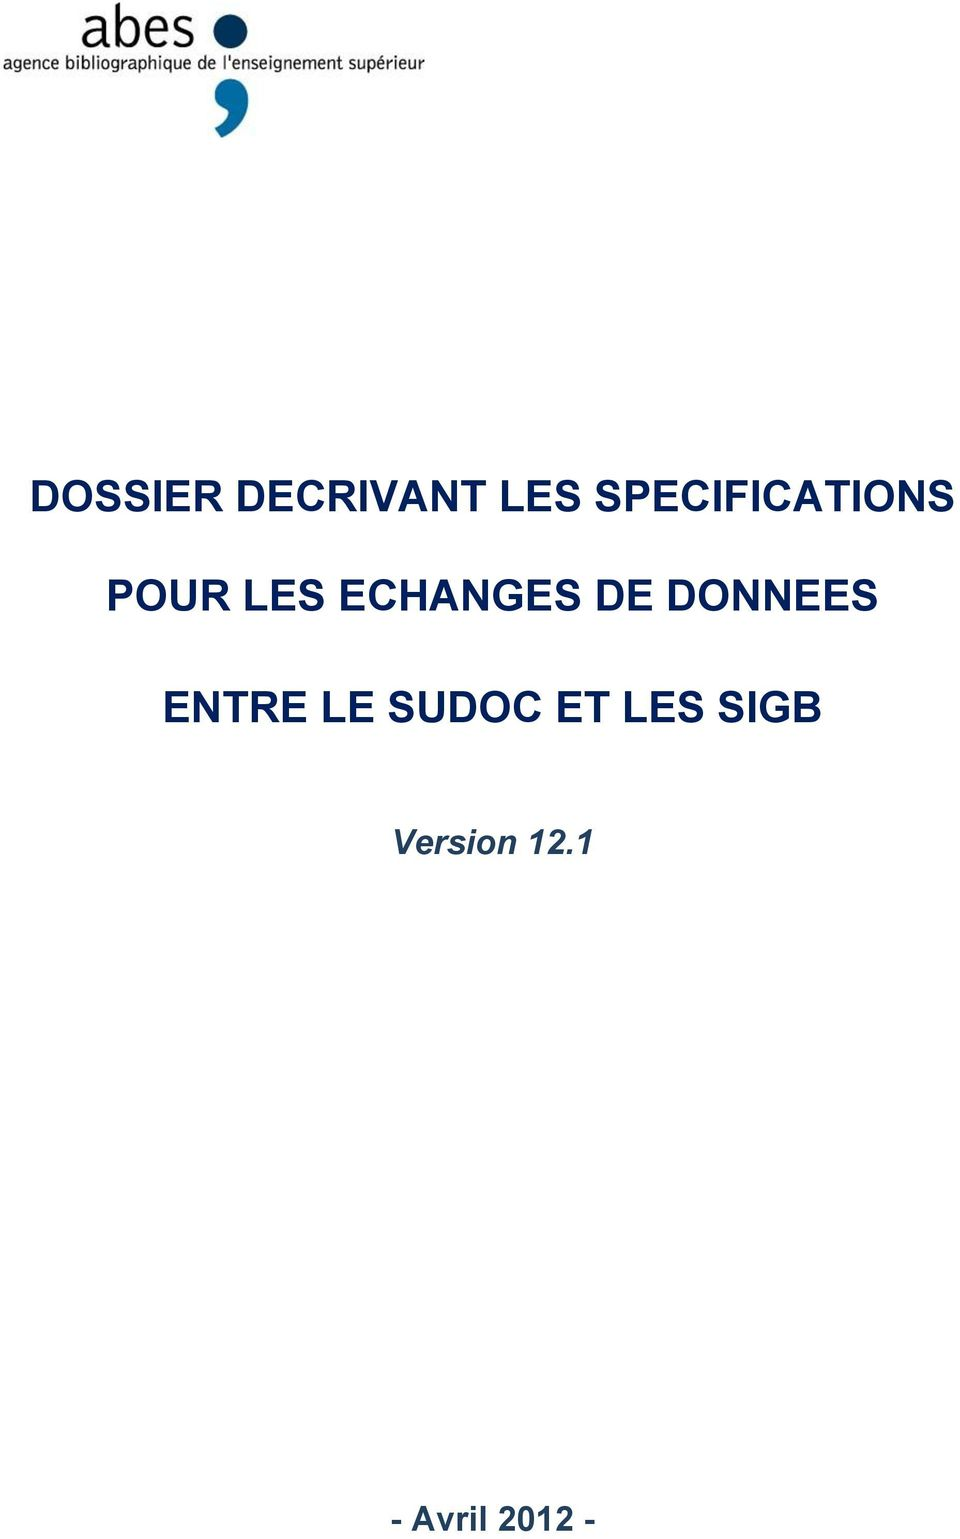 ECHANGES DE DONNEES ENTRE LE